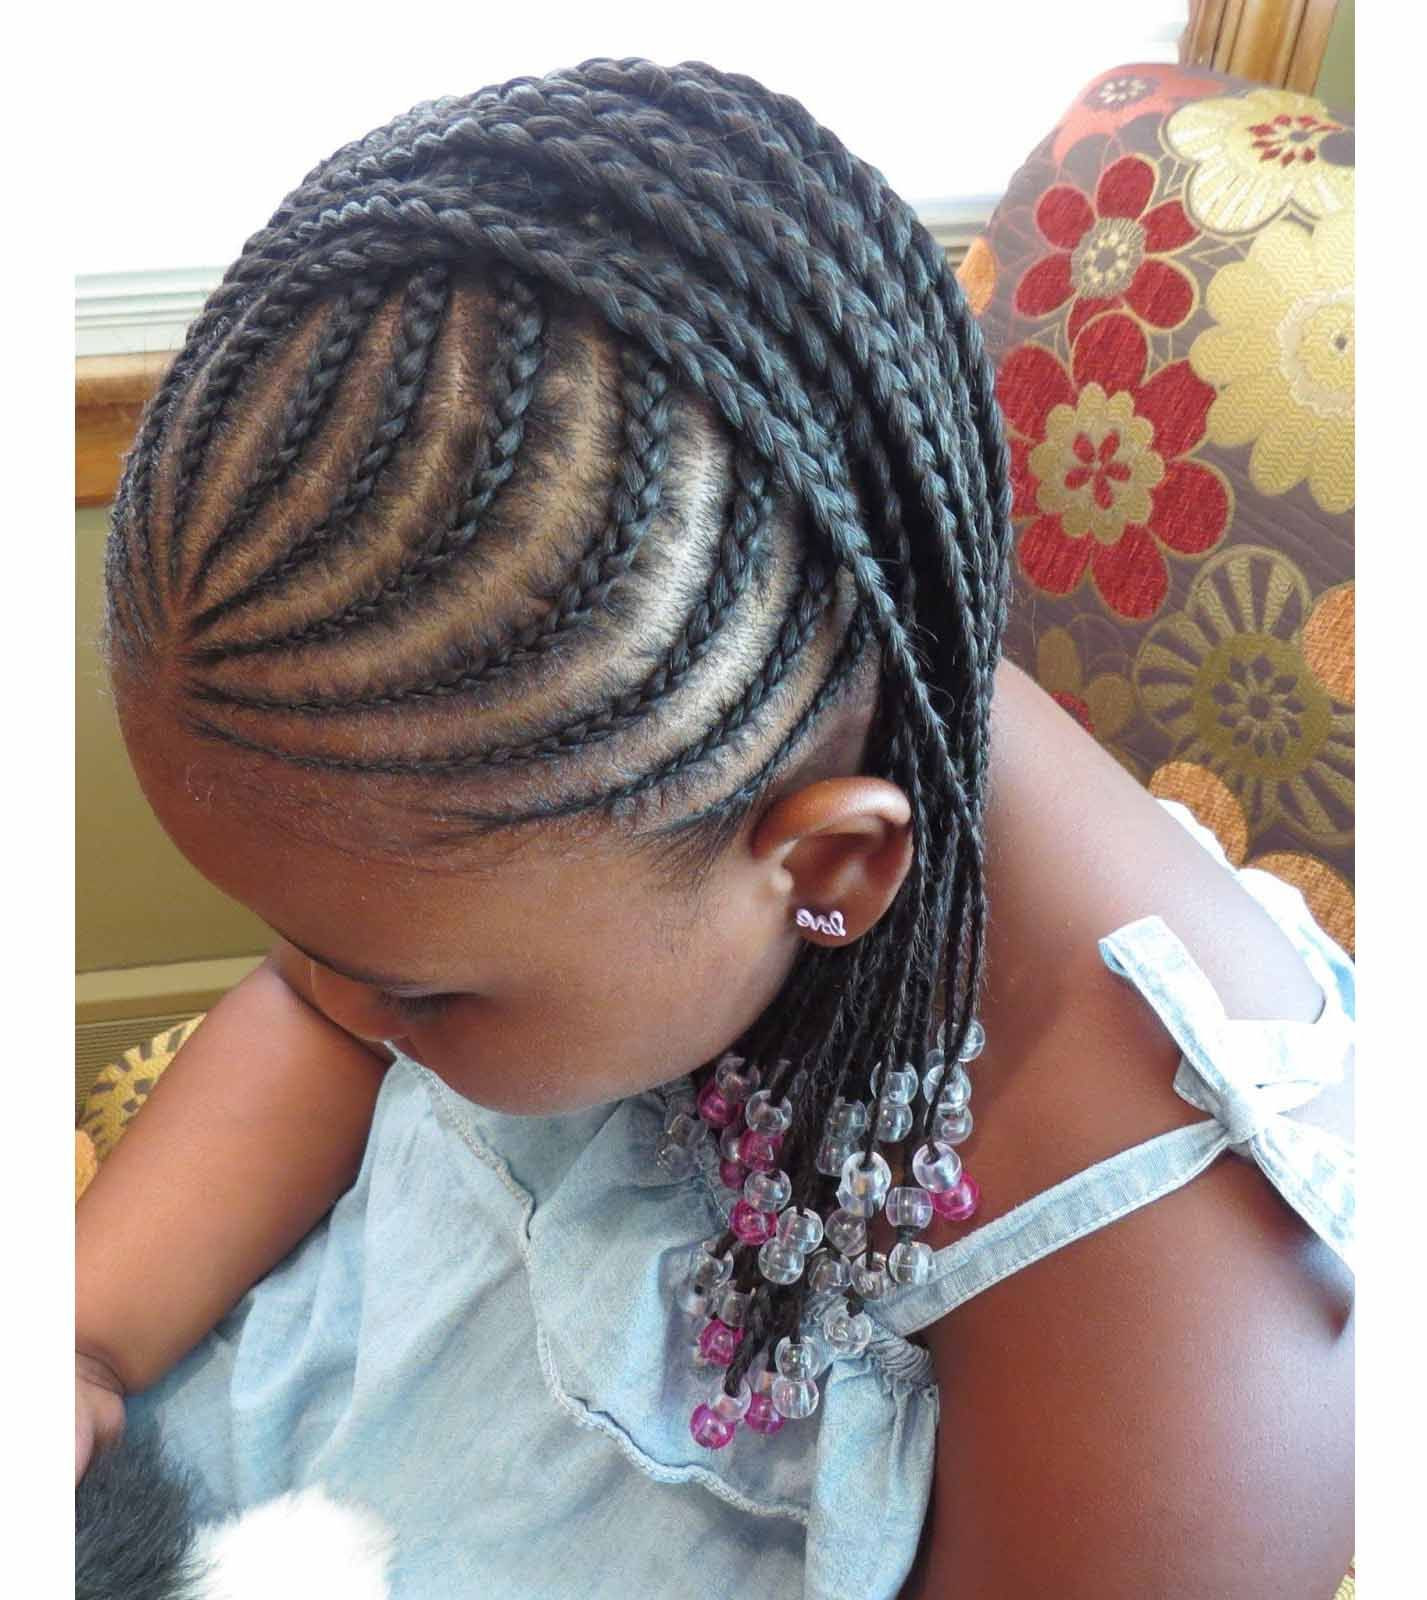 Best ideas about Hairstyle Braids For Little Girls . Save or Pin Braided hairstyles for little black girls with different Now.